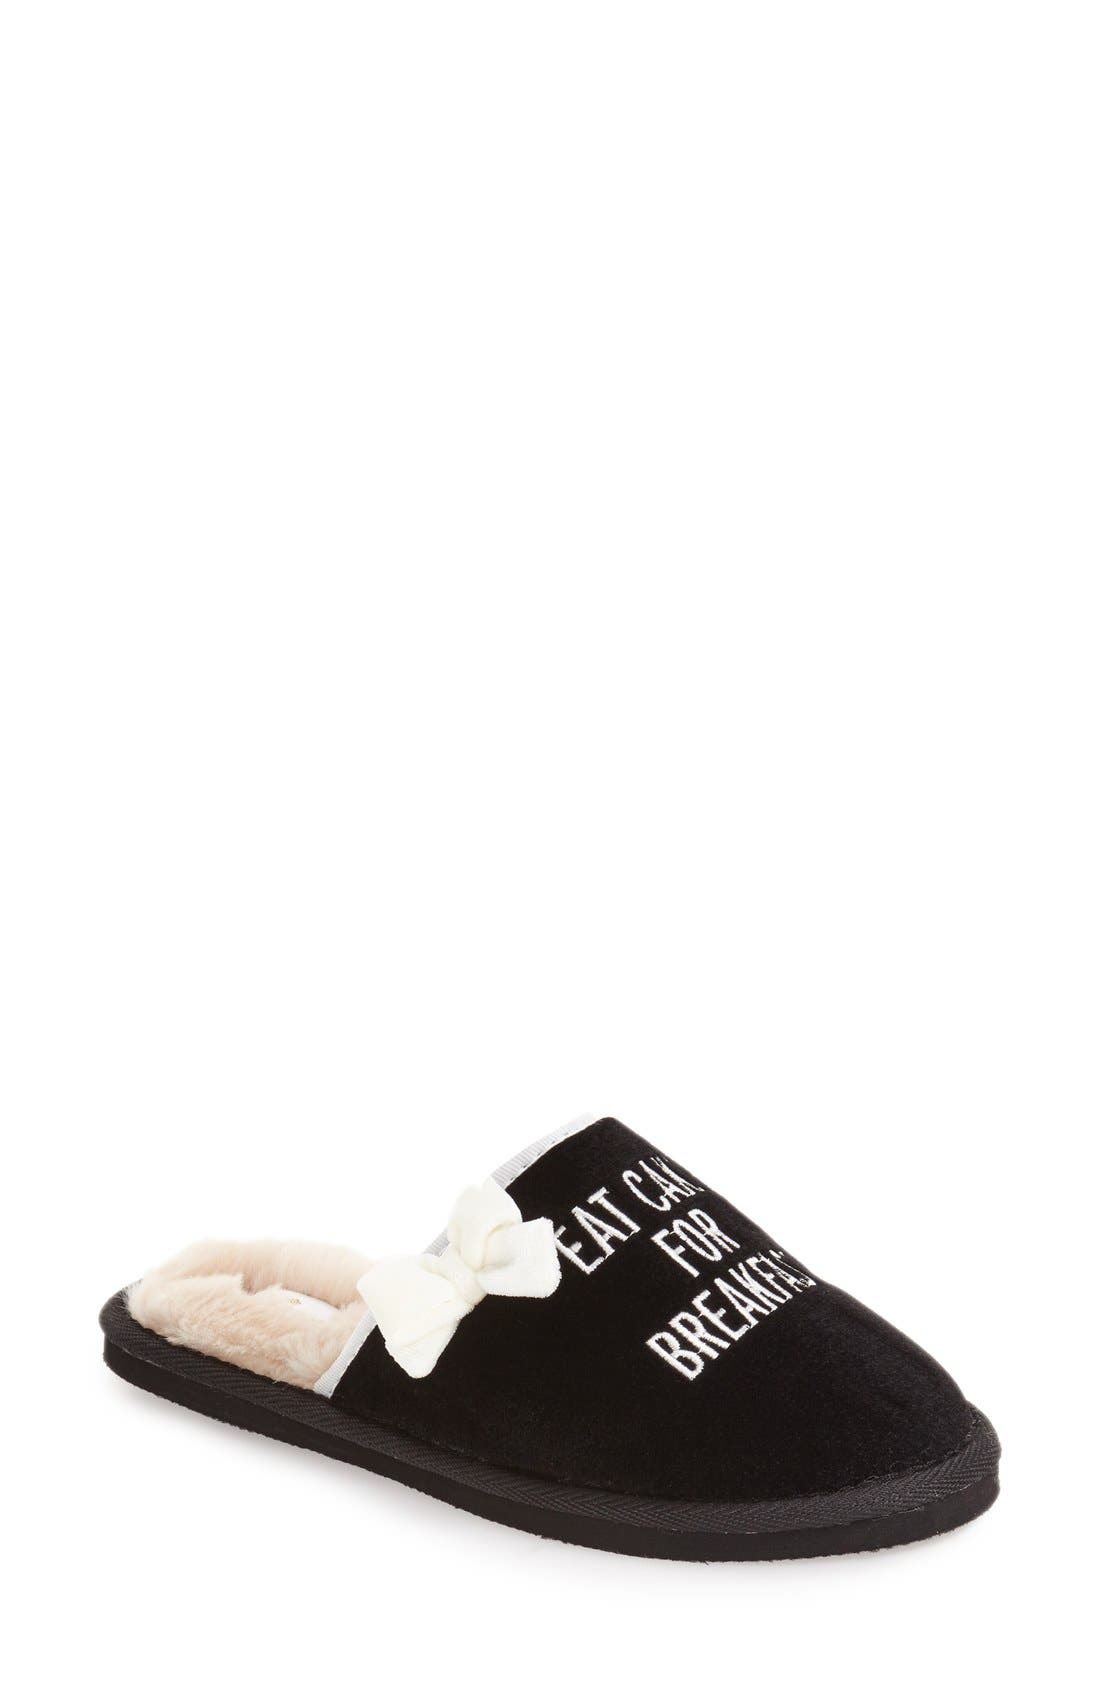 Alternate Image 1 Selected - kate spade new york 'eat cake for breakfast' slipper (Women)